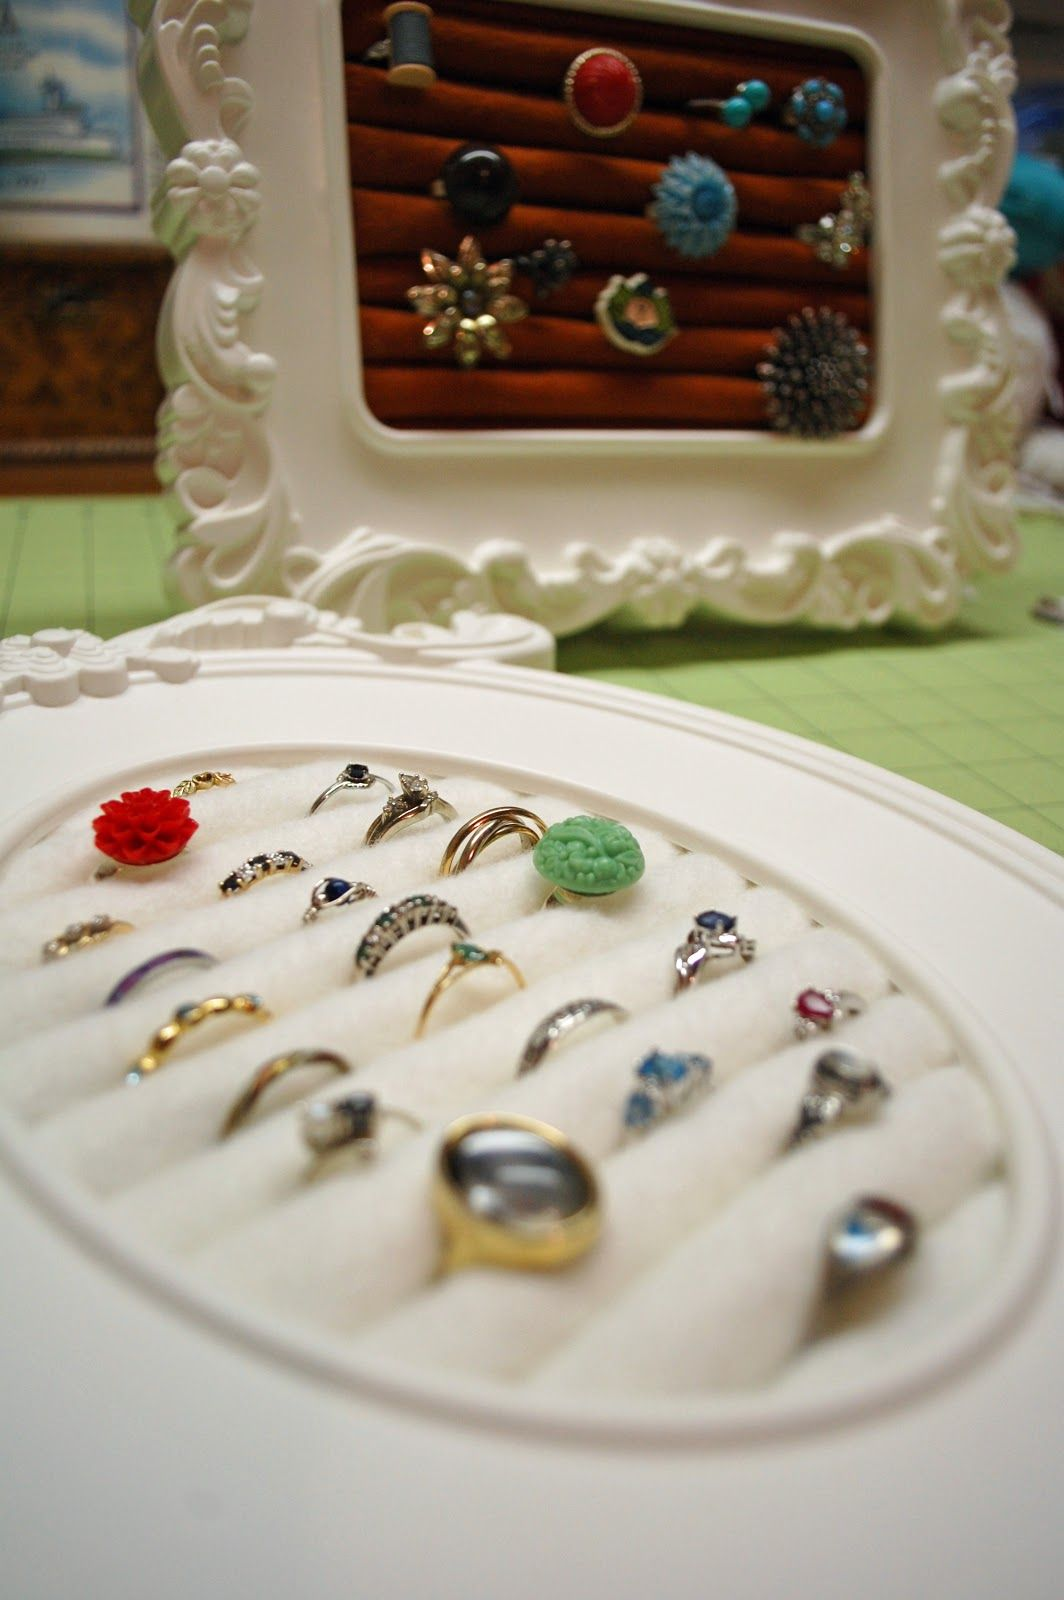 Necklaces tangled earrings lost heres how to store all of your heres how to store all of your jewelry ring displaysjewelry displaysjewelry storage displayjewelry framesdiy solutioingenieria Images